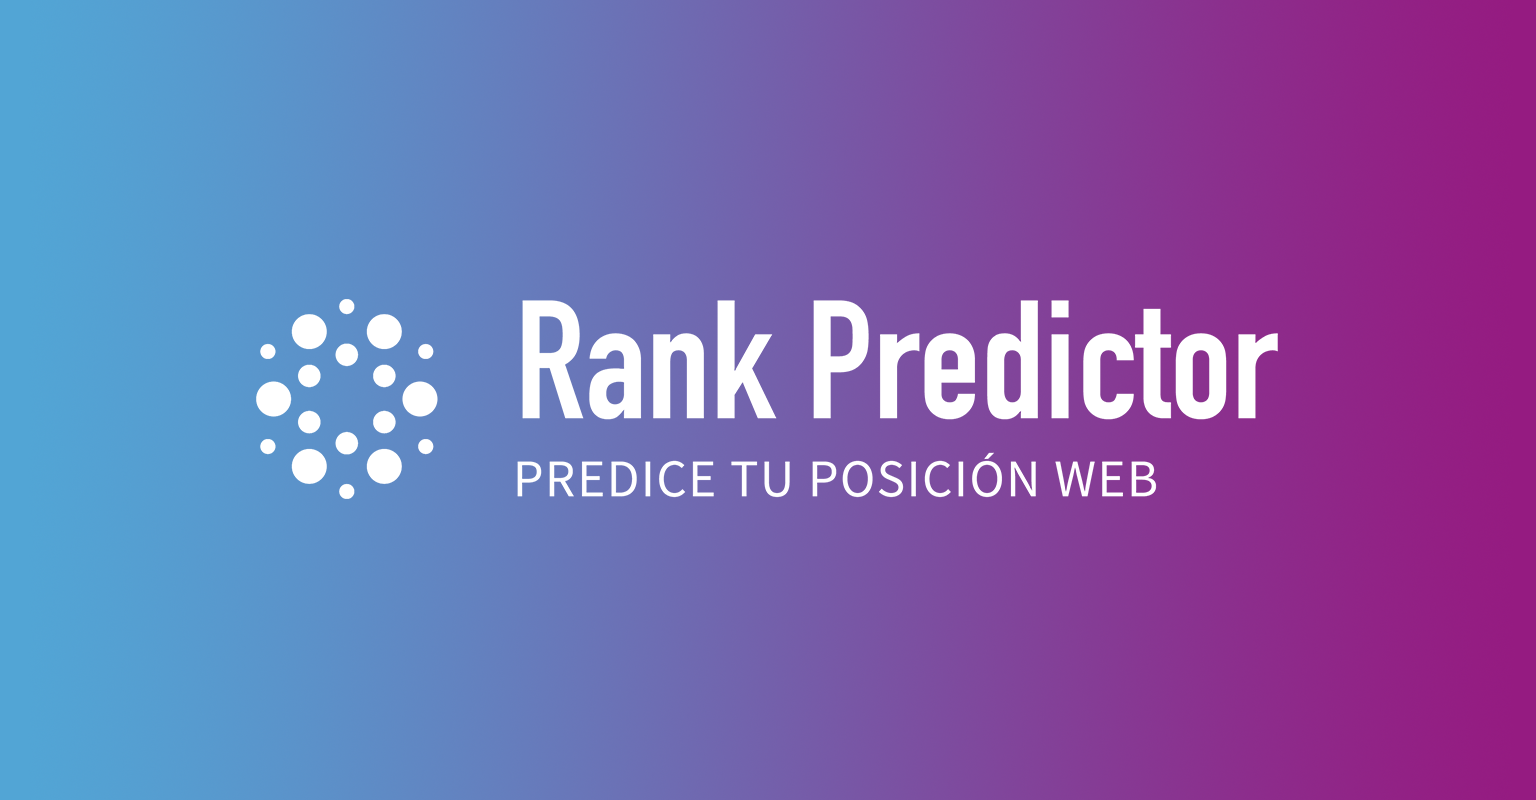 Rank Predictor